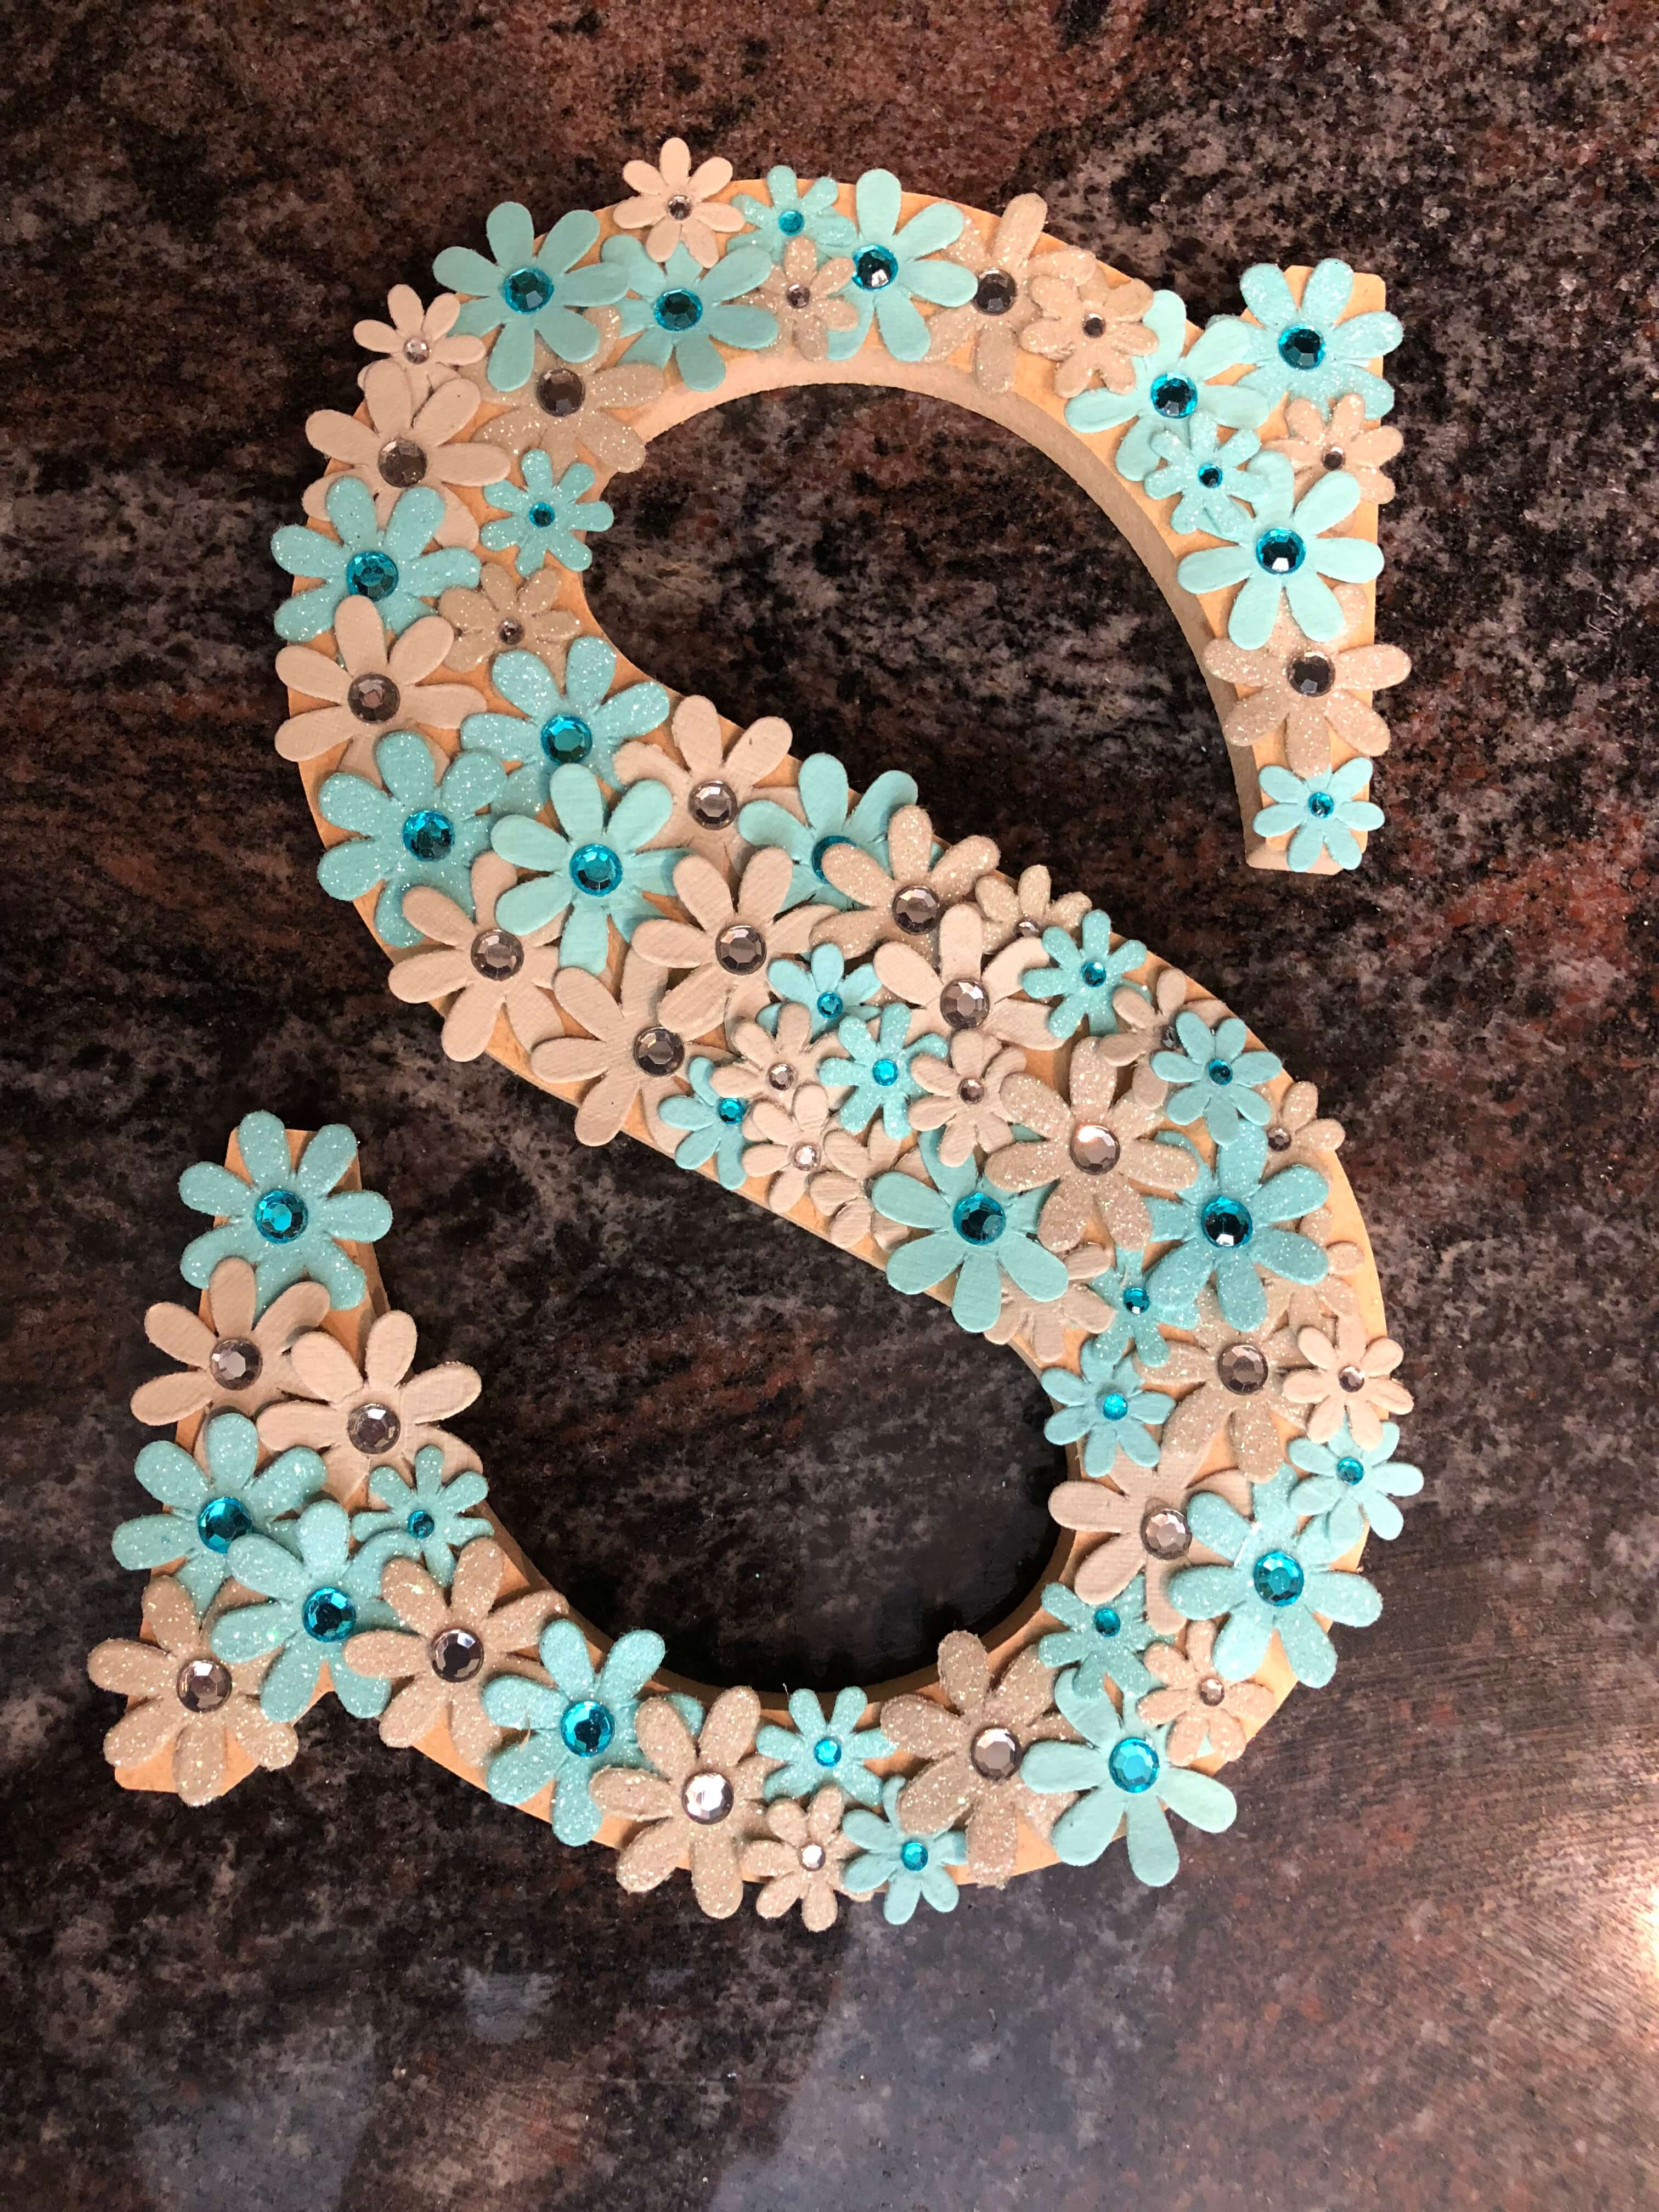 Baby Letters For Baby Shower : letters, shower, Modern, Shower, Decorations!, Bouquets!